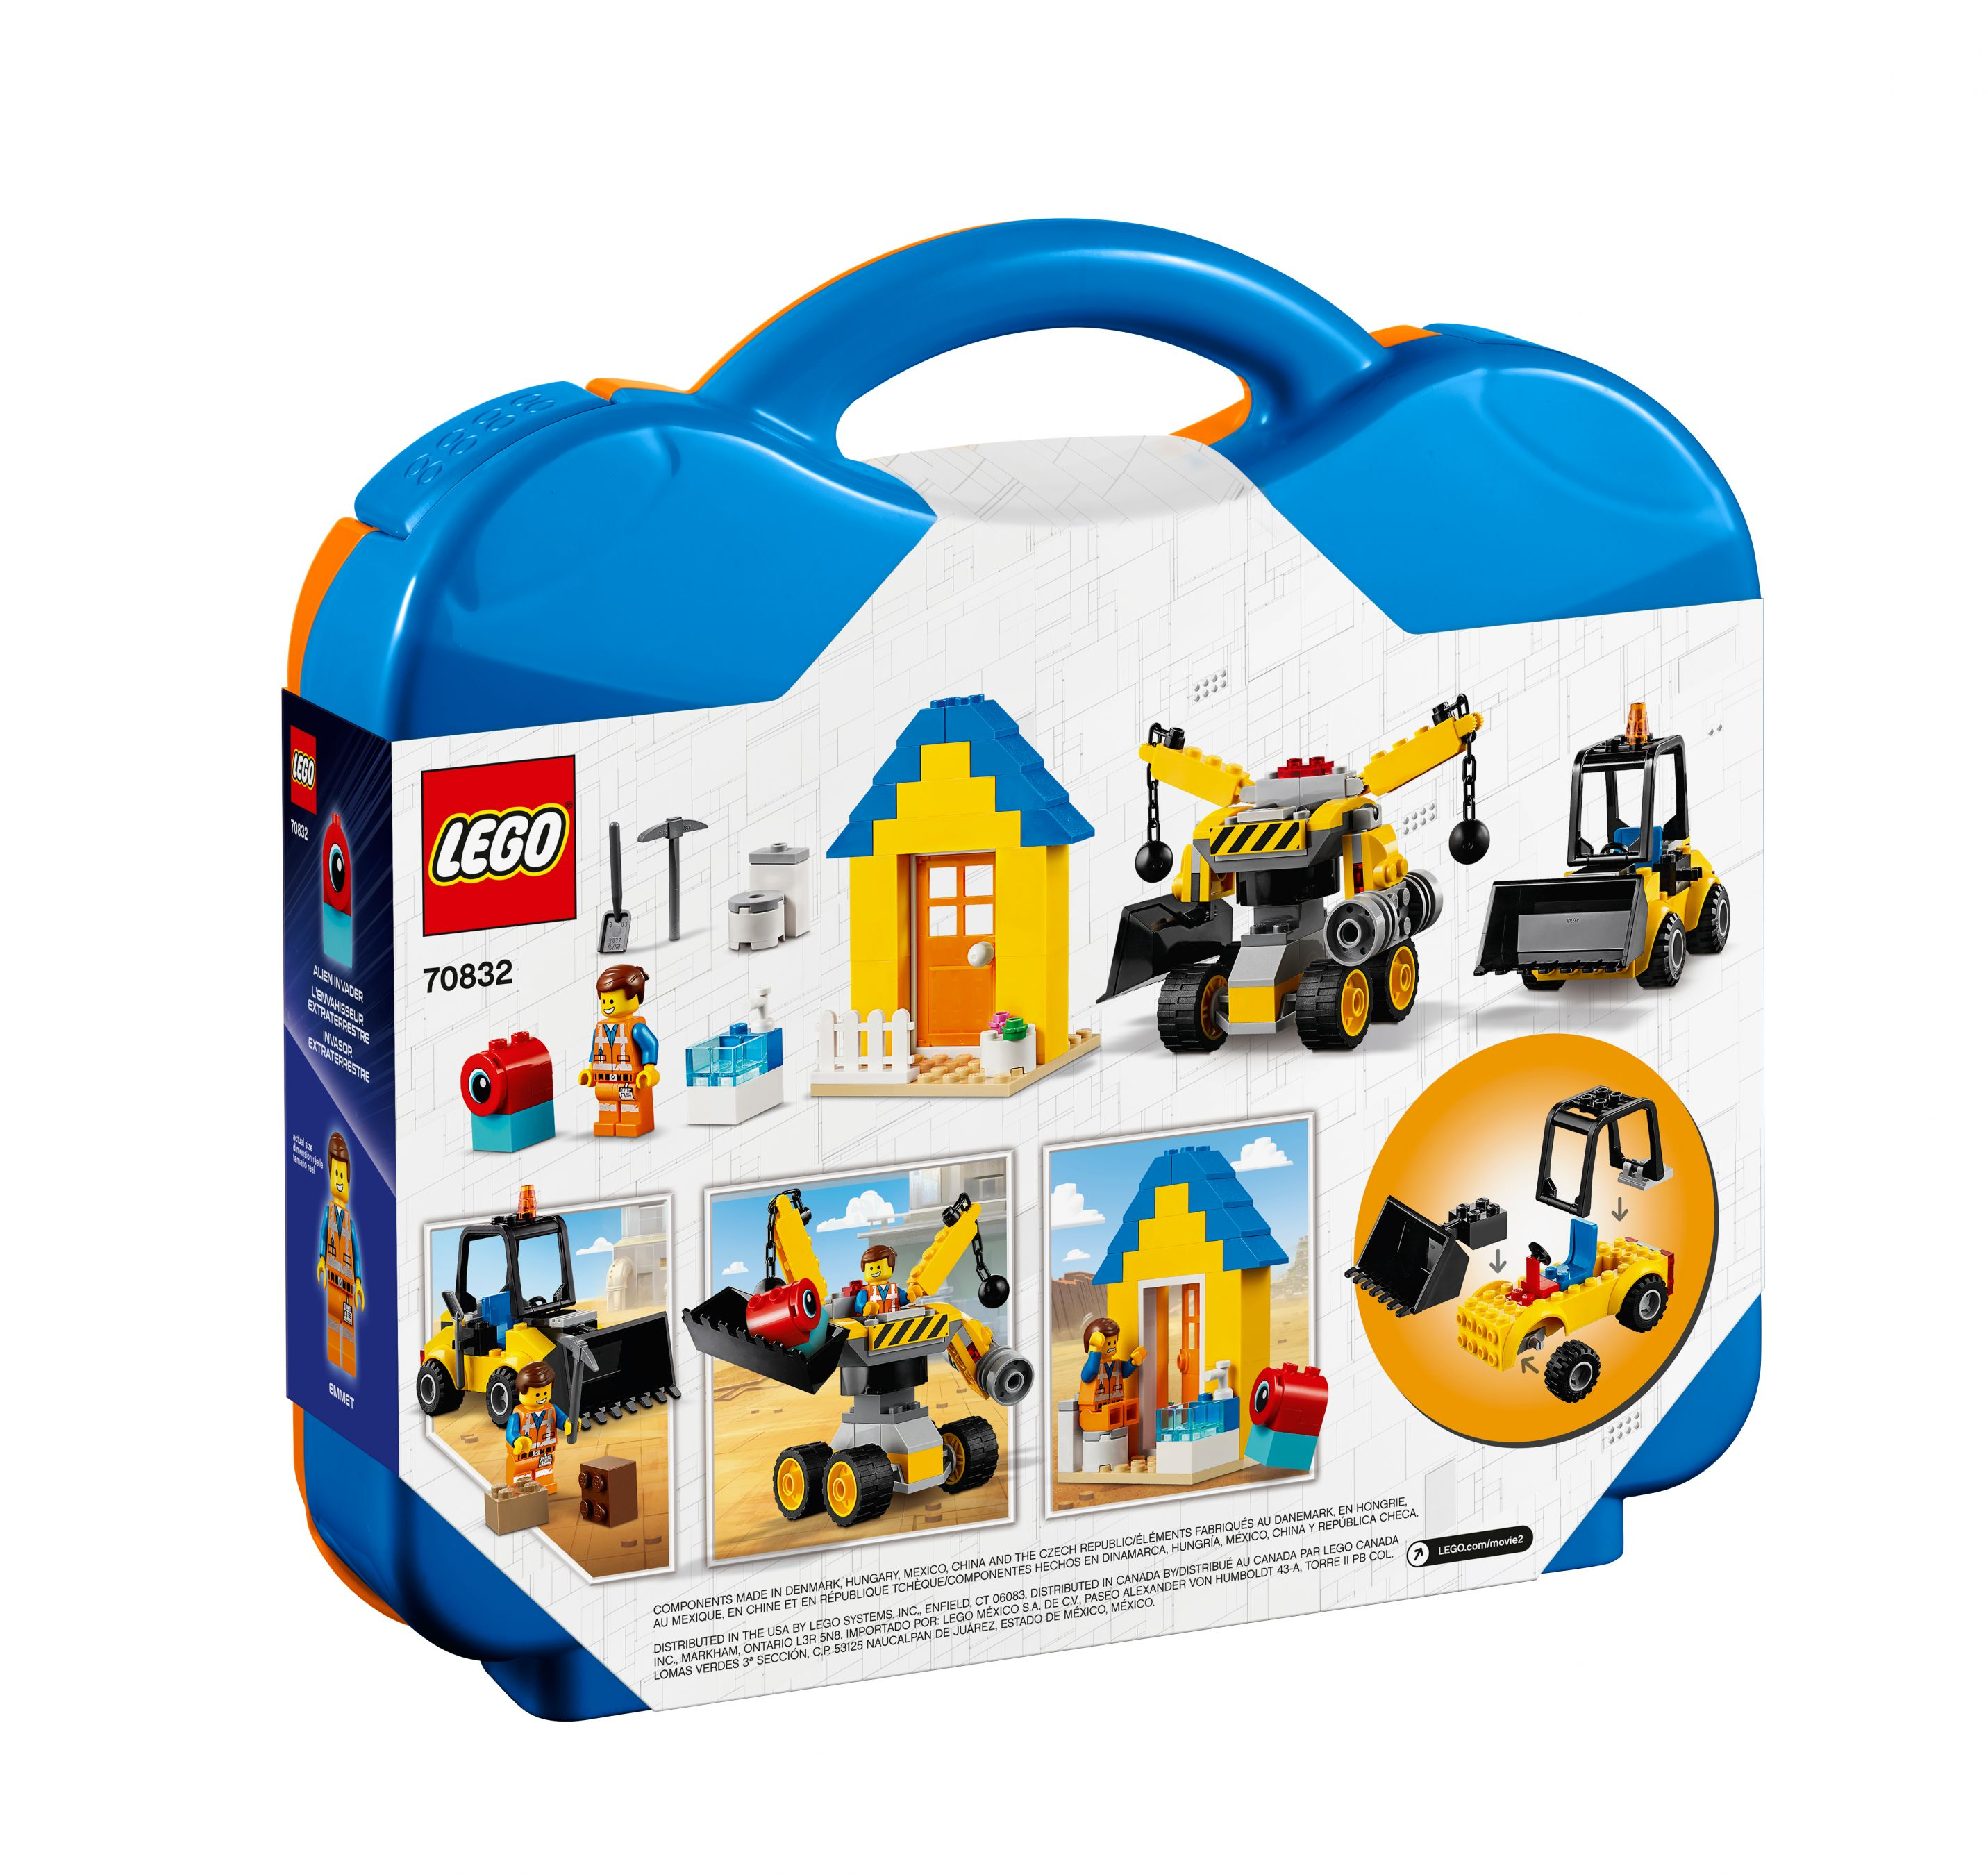 LEGO The LEGO Movie 2 70832 Emmets Baukoffer! LEGO_70832_alt8.jpg